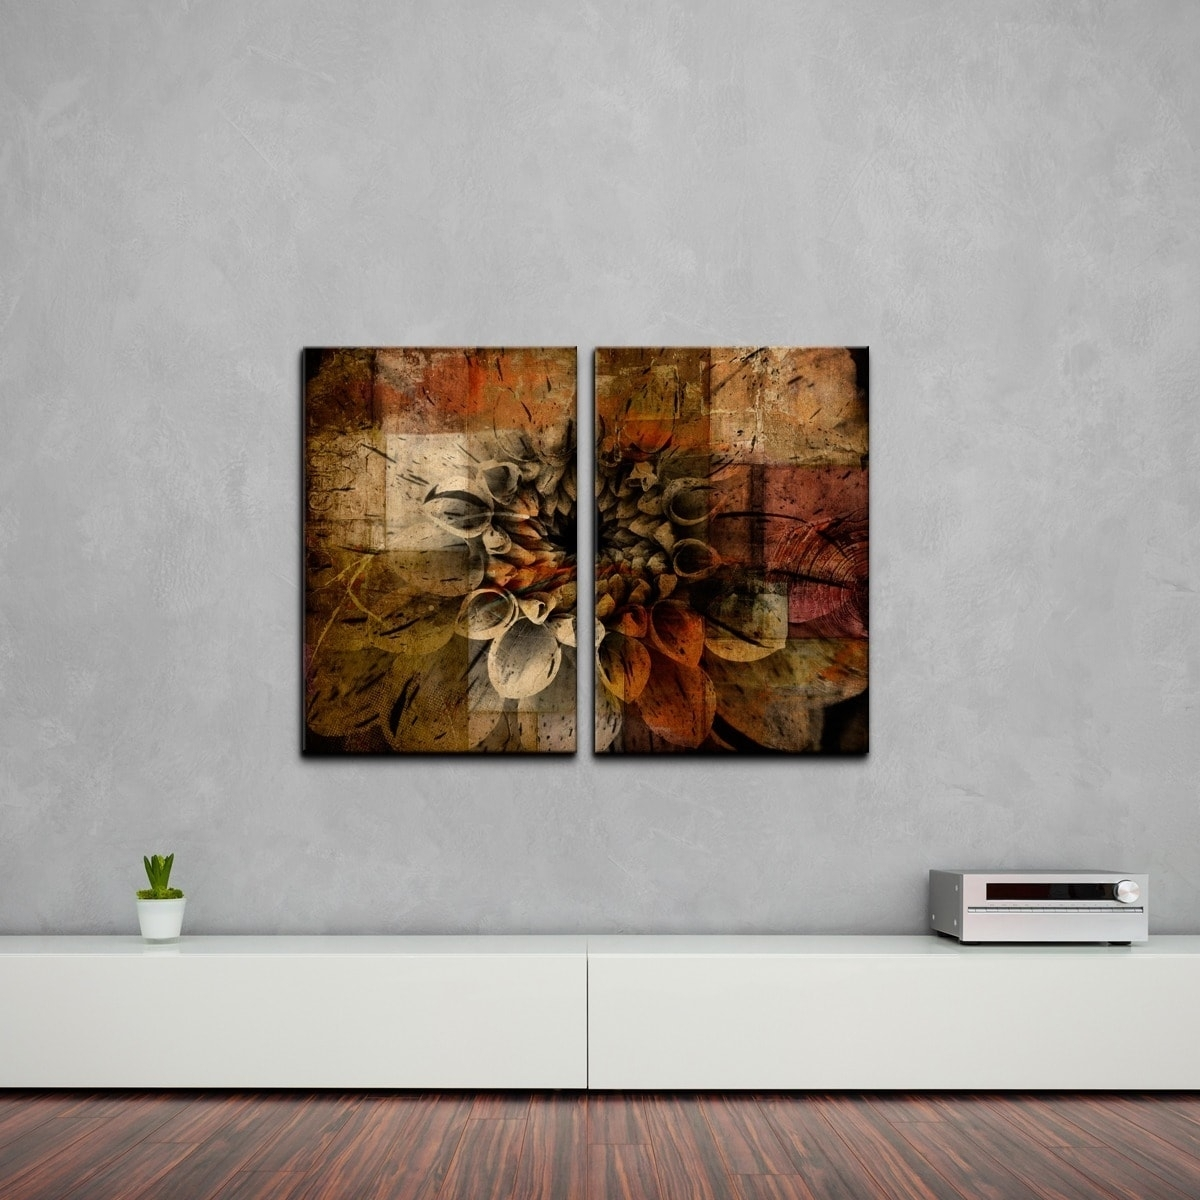 Ready2Hangart 'daisy' Multi Panel Oversized Abstract Canvas Wall Throughout Recent Abstract Oversized Canvas Wall Art (Gallery 16 of 20)